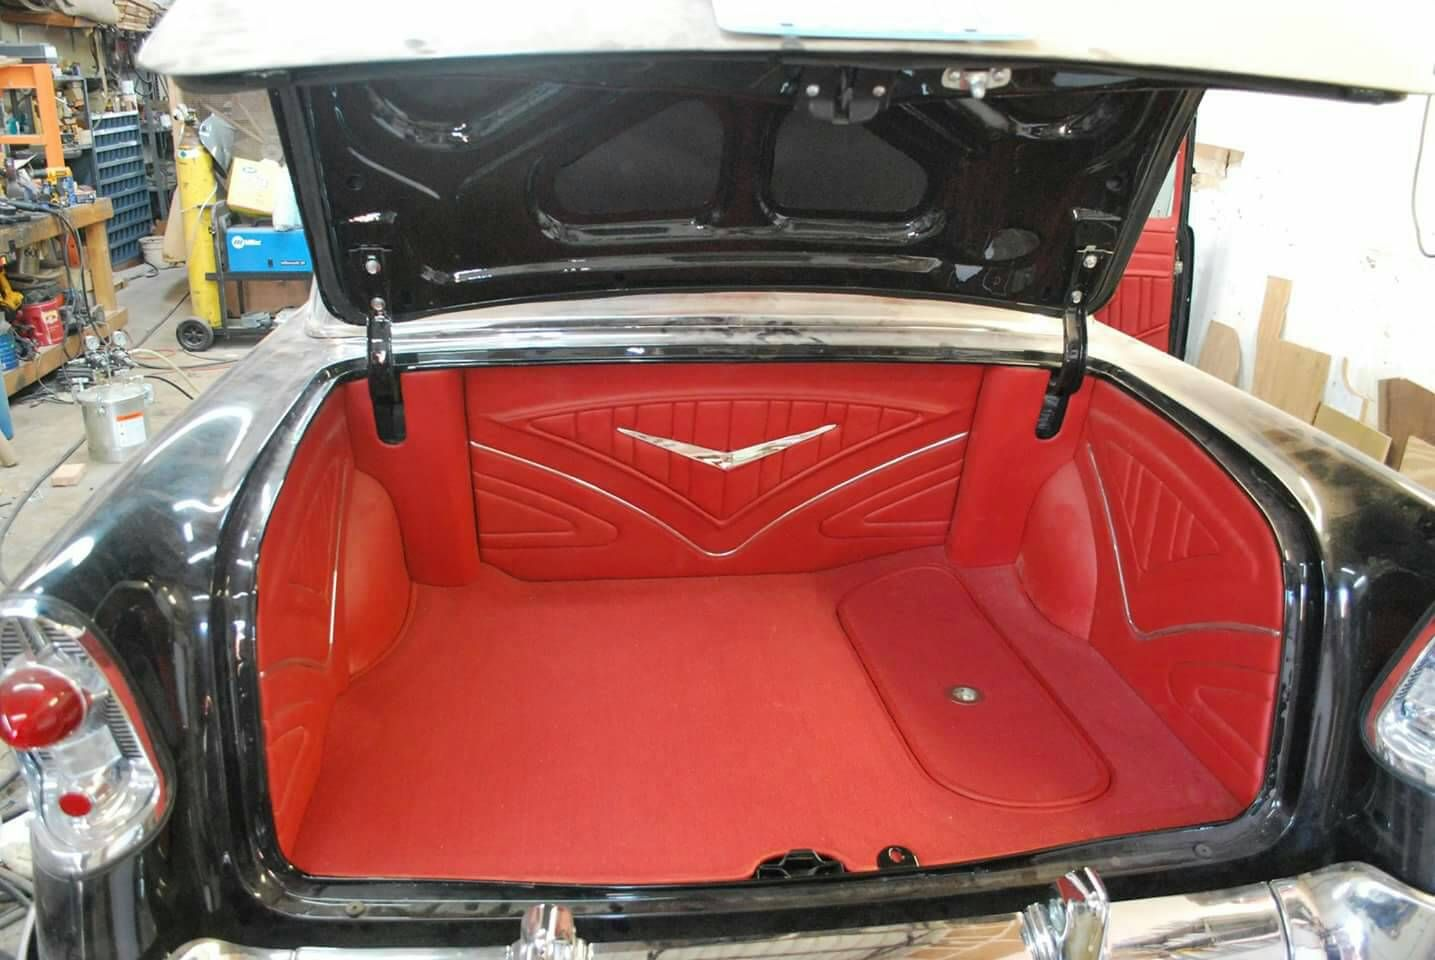 Carpet Entire Trunk Without Panels Trifive Com 1955 Chevy 1956 Chevy 1957 Chevy Forum Talk About You Custom Car Interior Automotive Upholstery 1955 Chevy